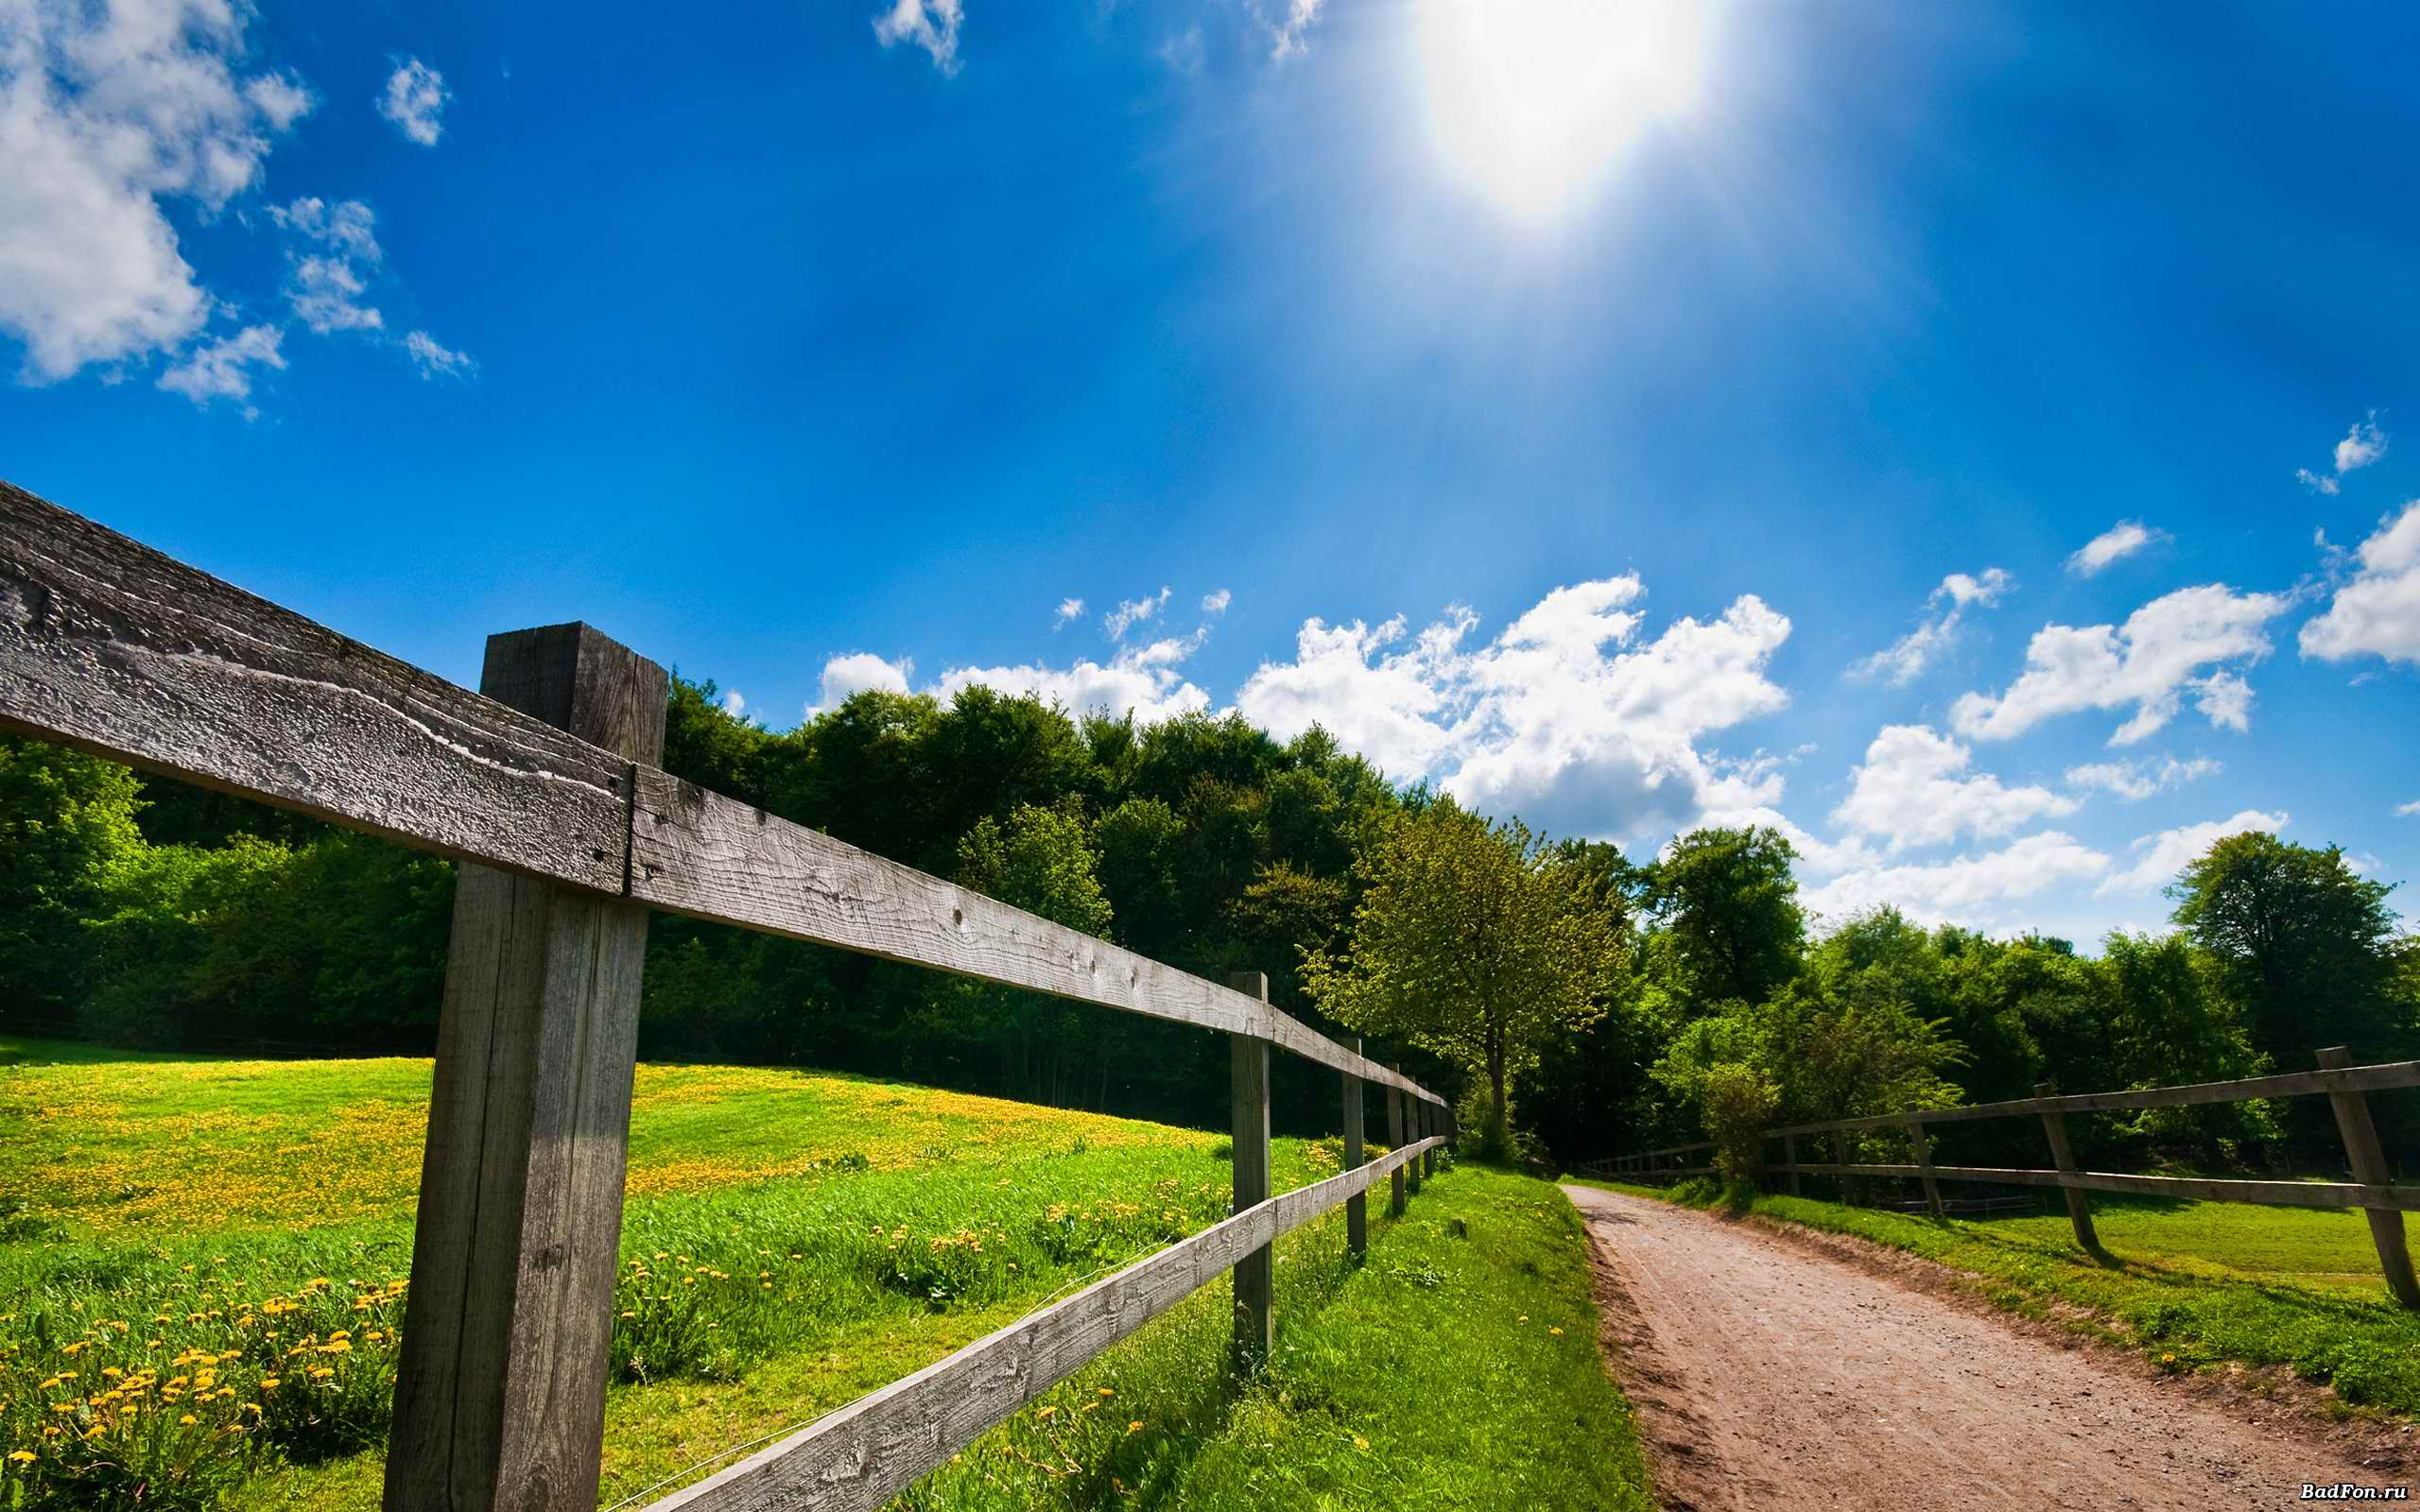 Sunny Day Backgrounds Wallpaper Cave